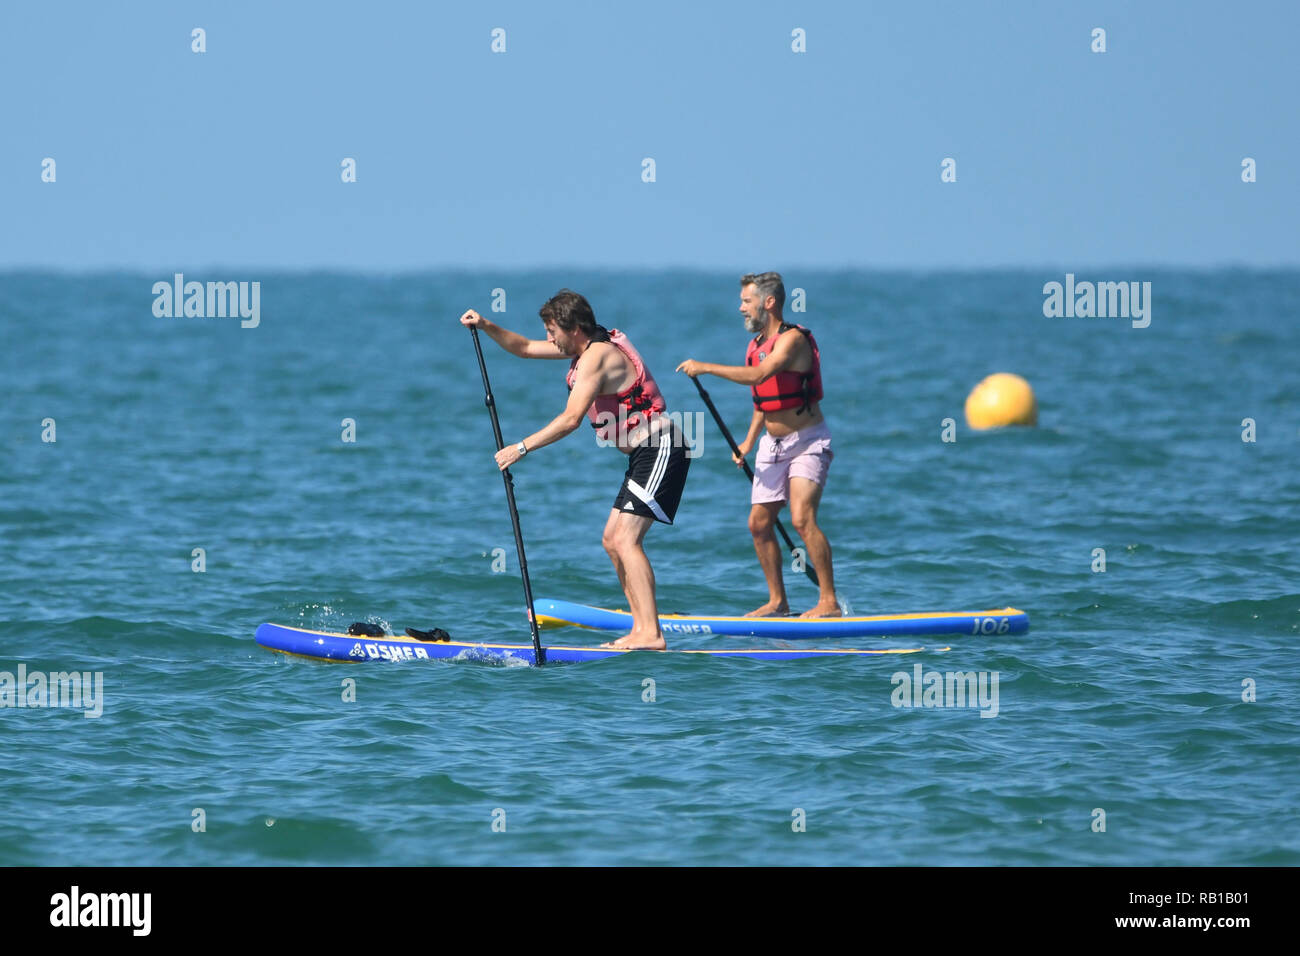 3b347c3d4d Paddle Board Stock Photos & Paddle Board Stock Images - Alamy